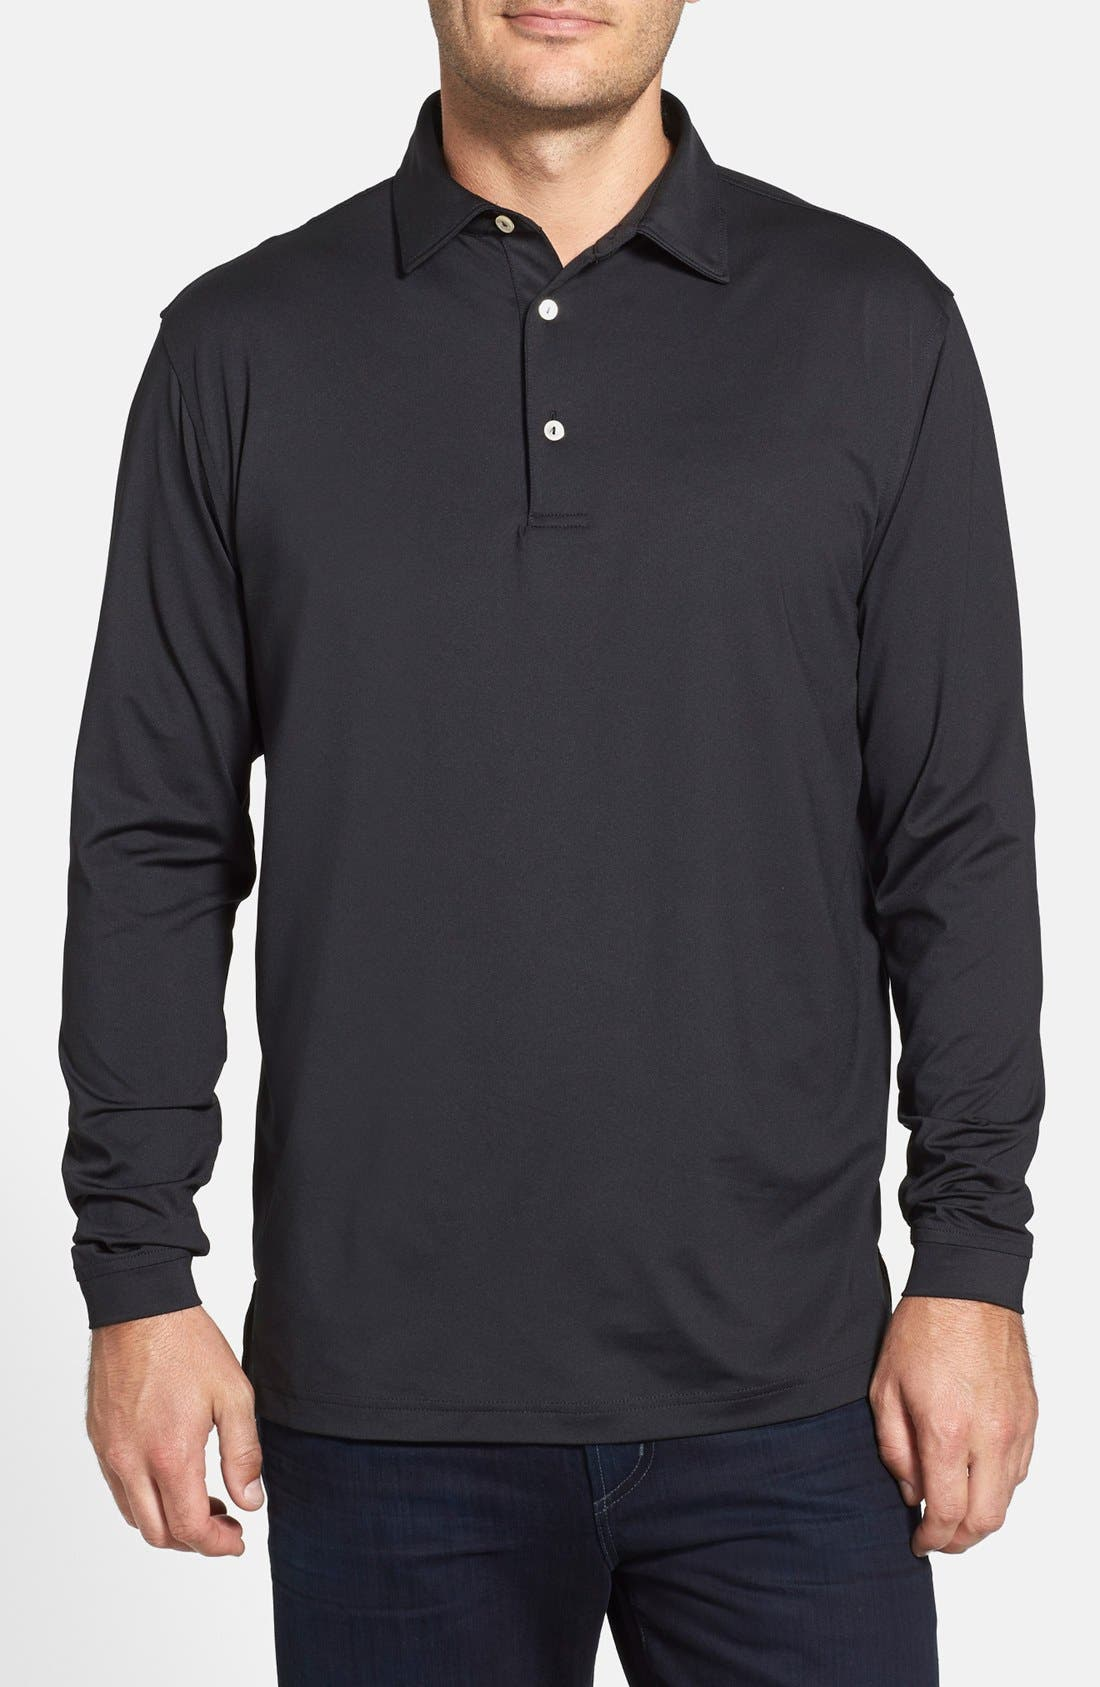 Main Image - Peter Millar Moisture Wicking Stretch Long Sleeve Polo